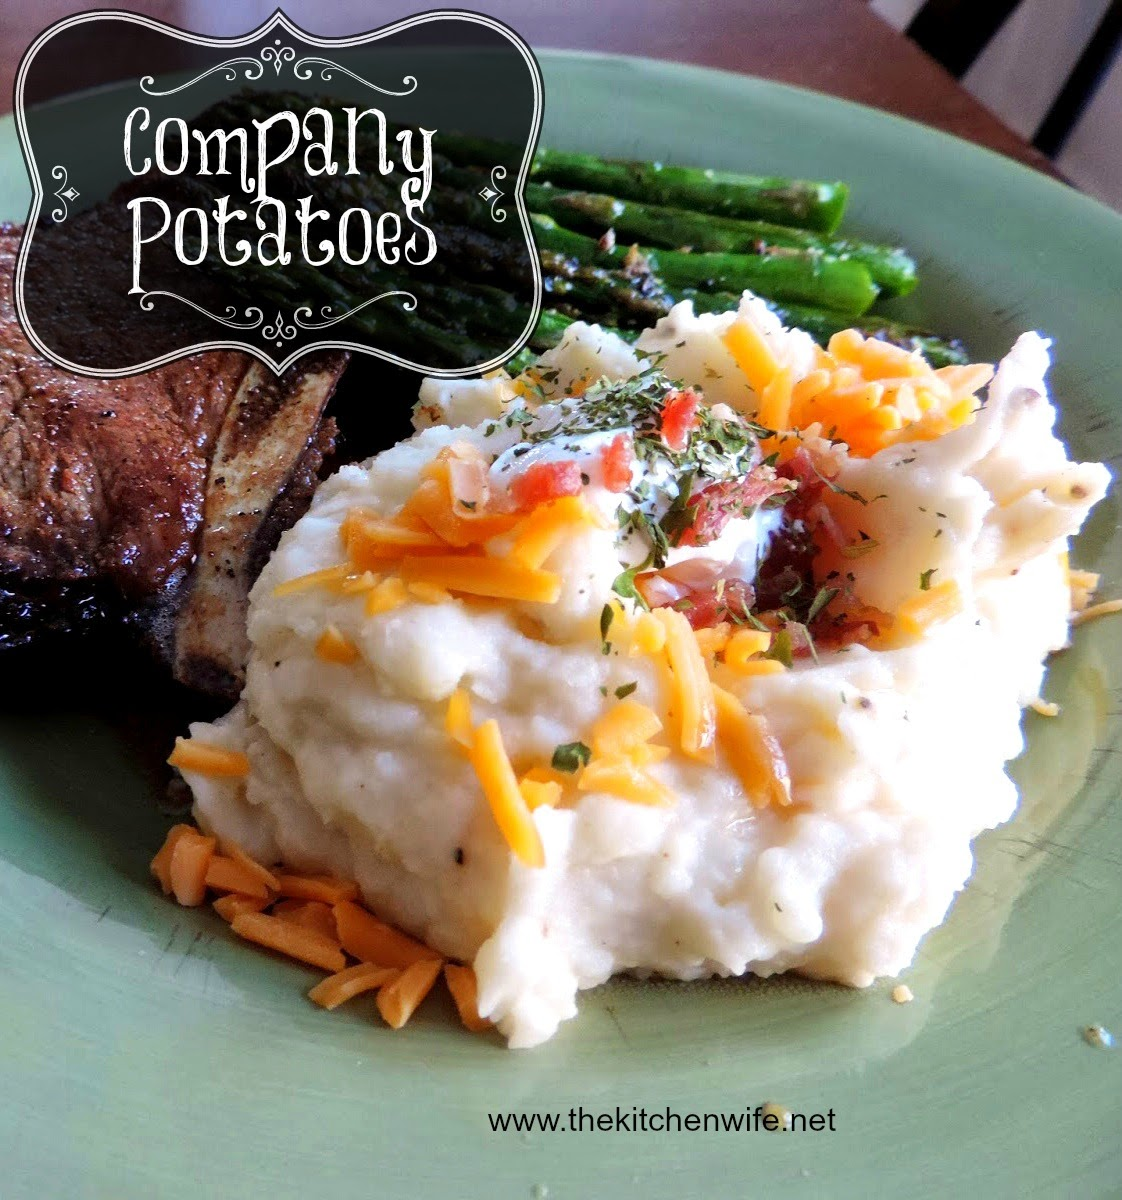 The finished mashed potatoes on a plate with steak and asparagus.